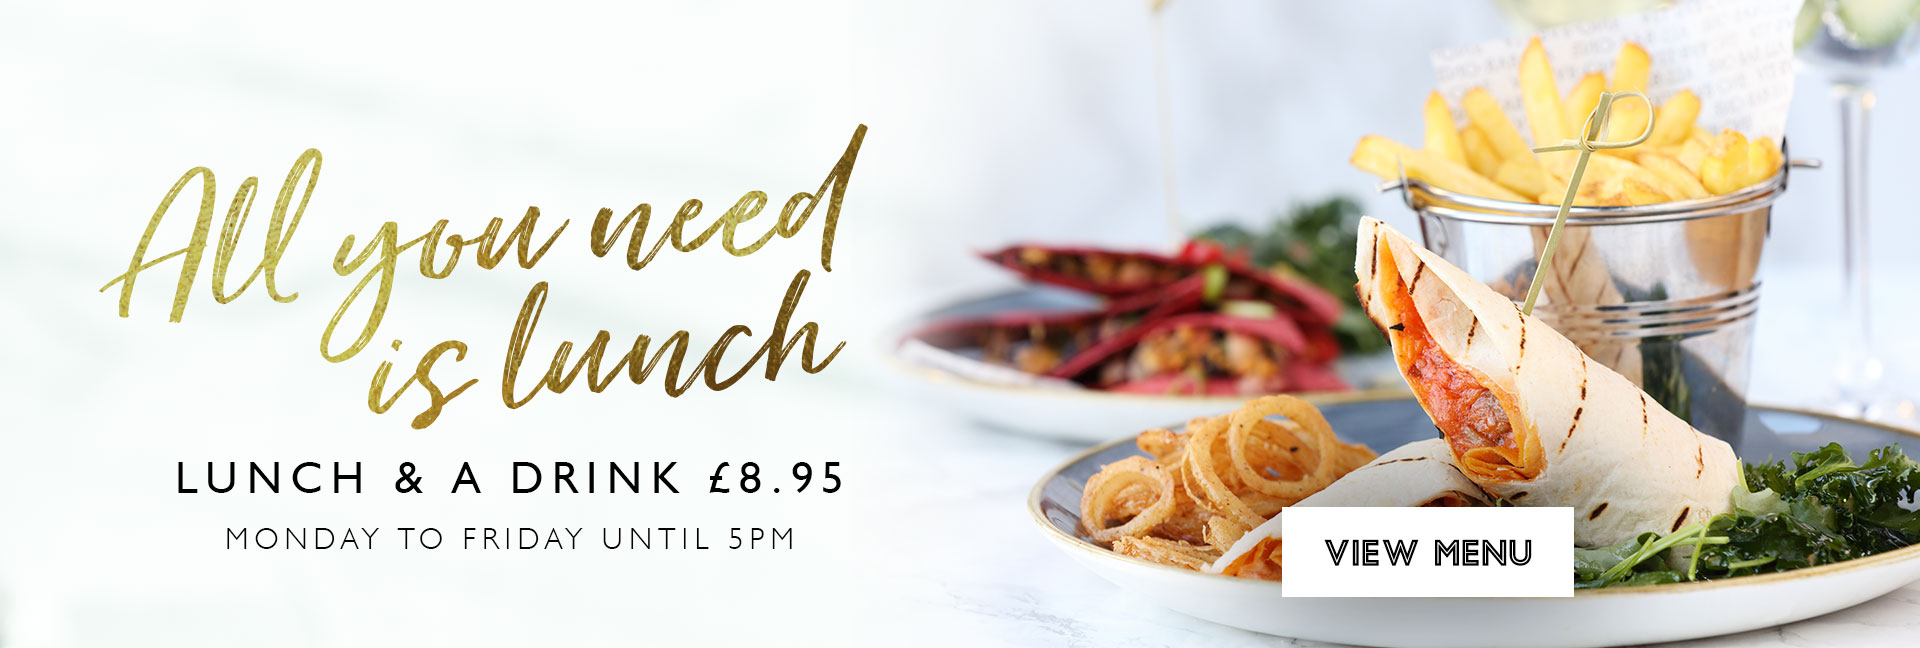 Lunch Offer at All Bar One Harrogate